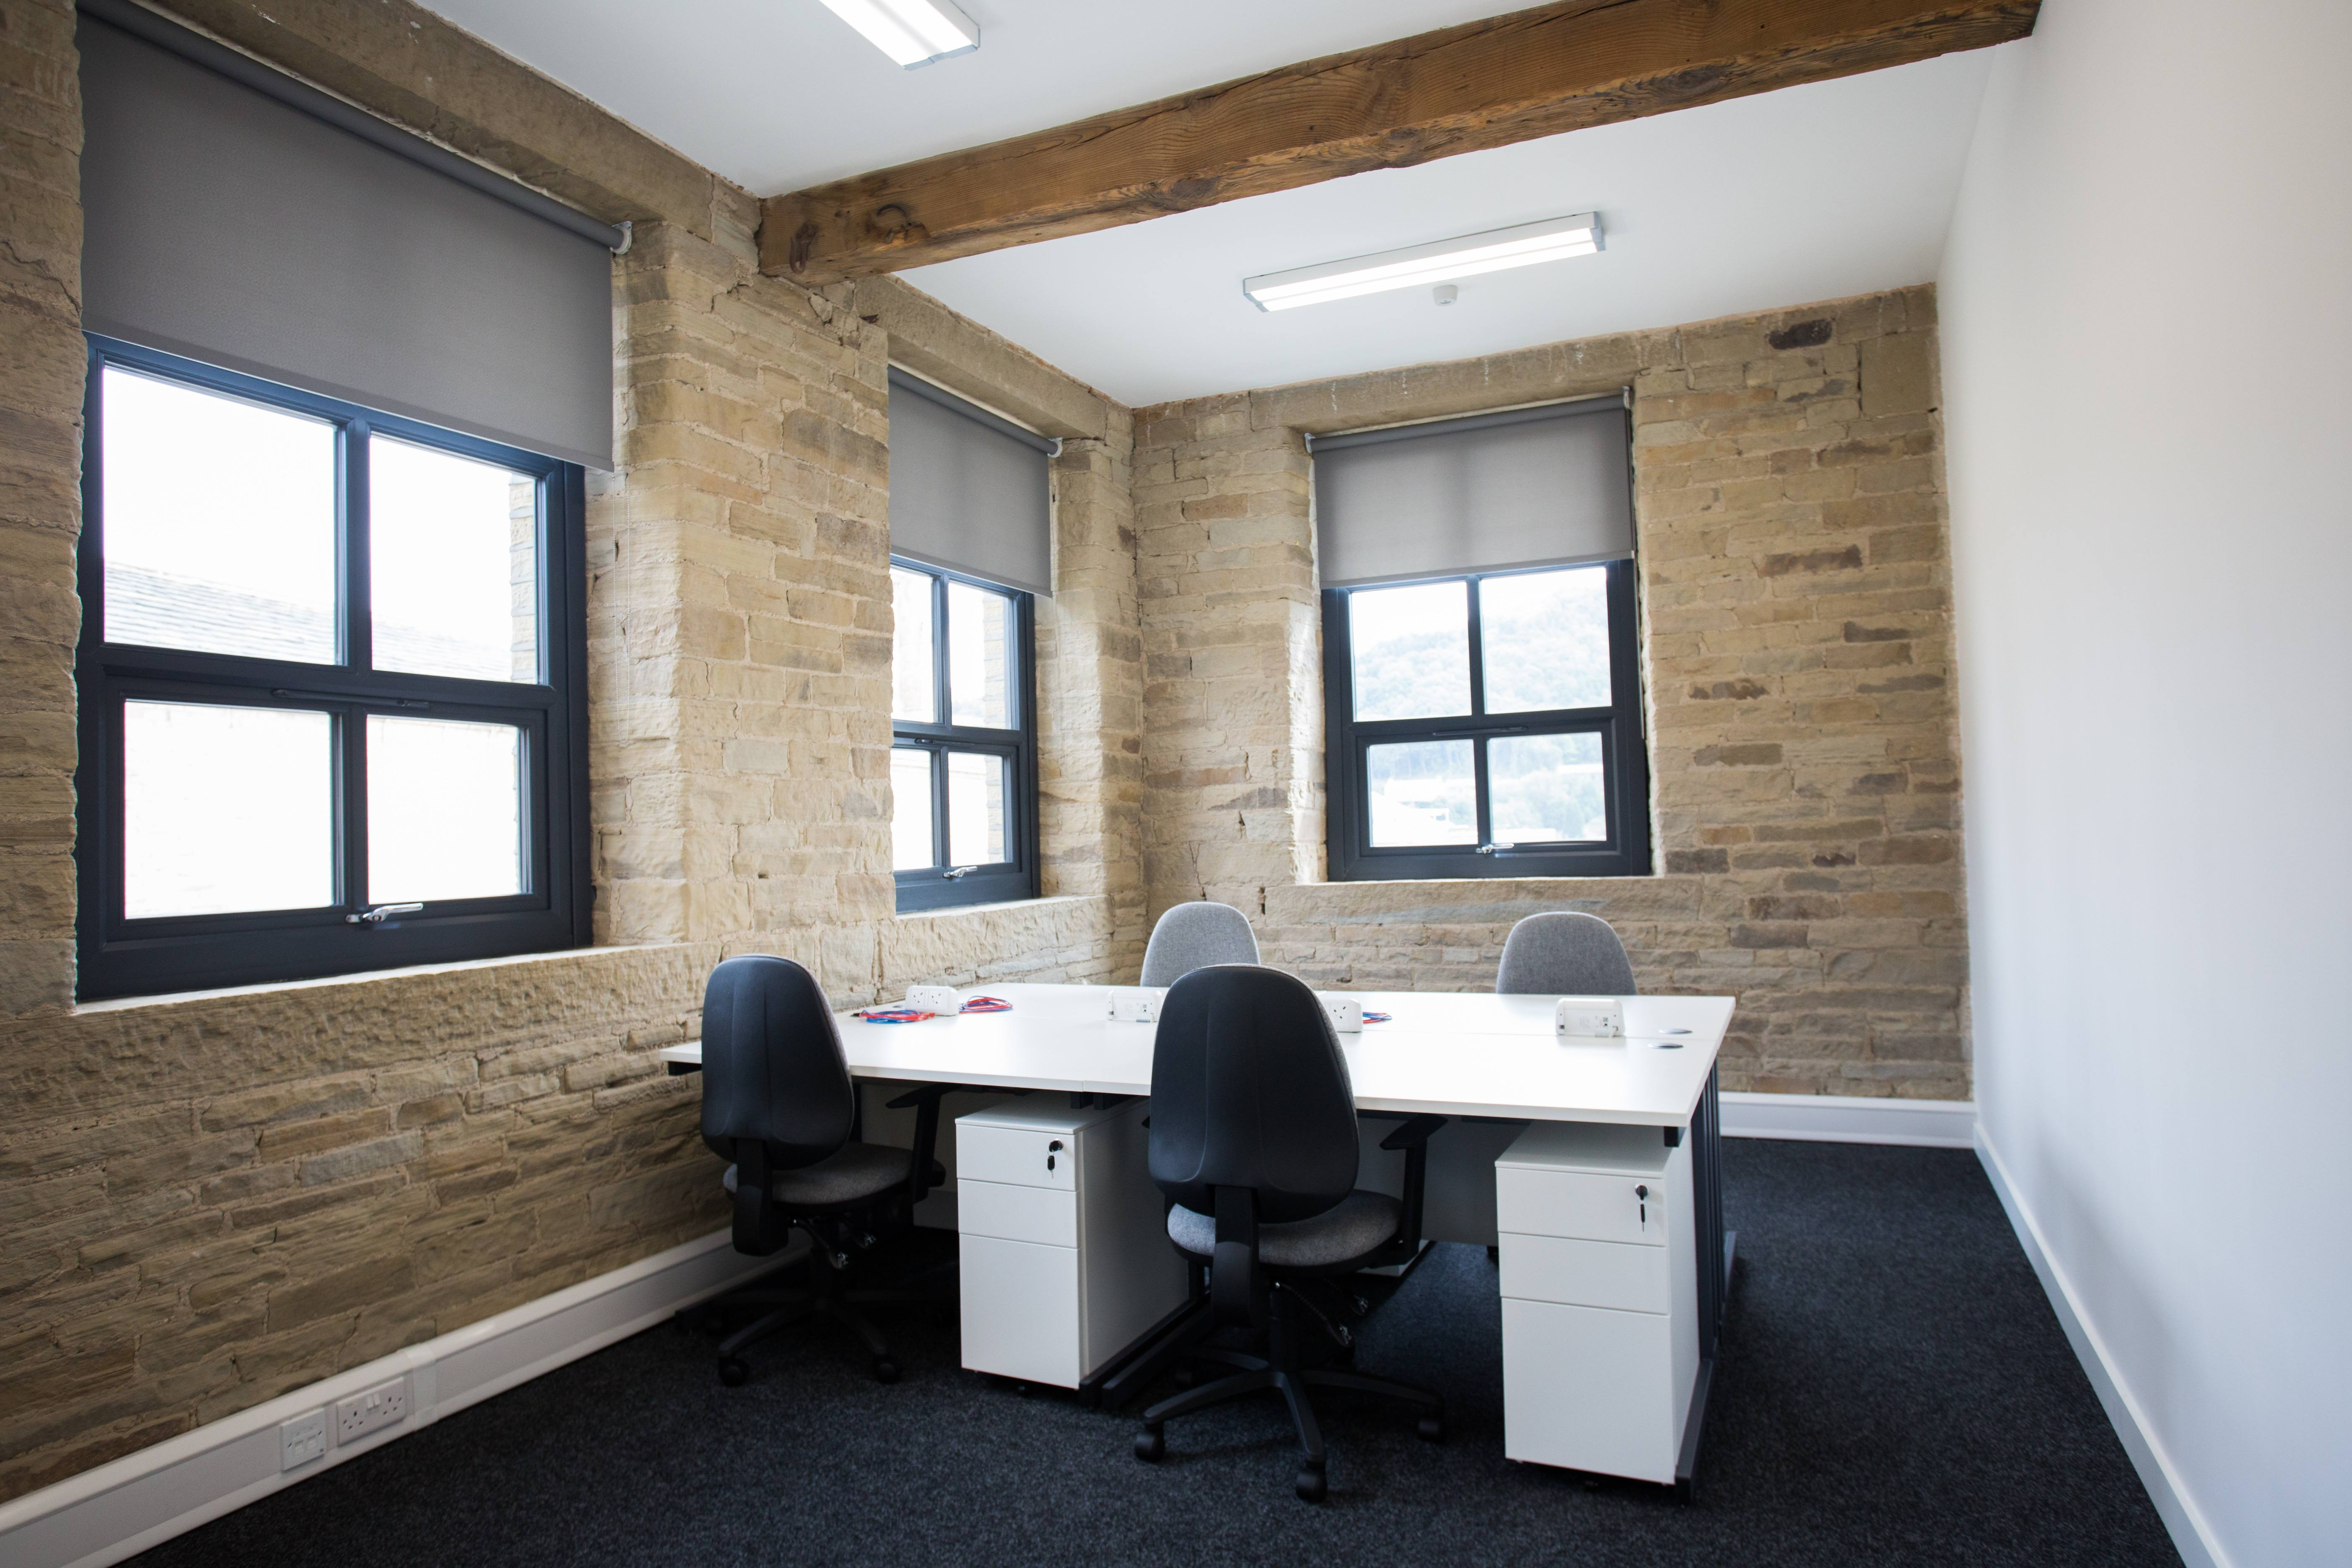 Office space/meeting room for four people.